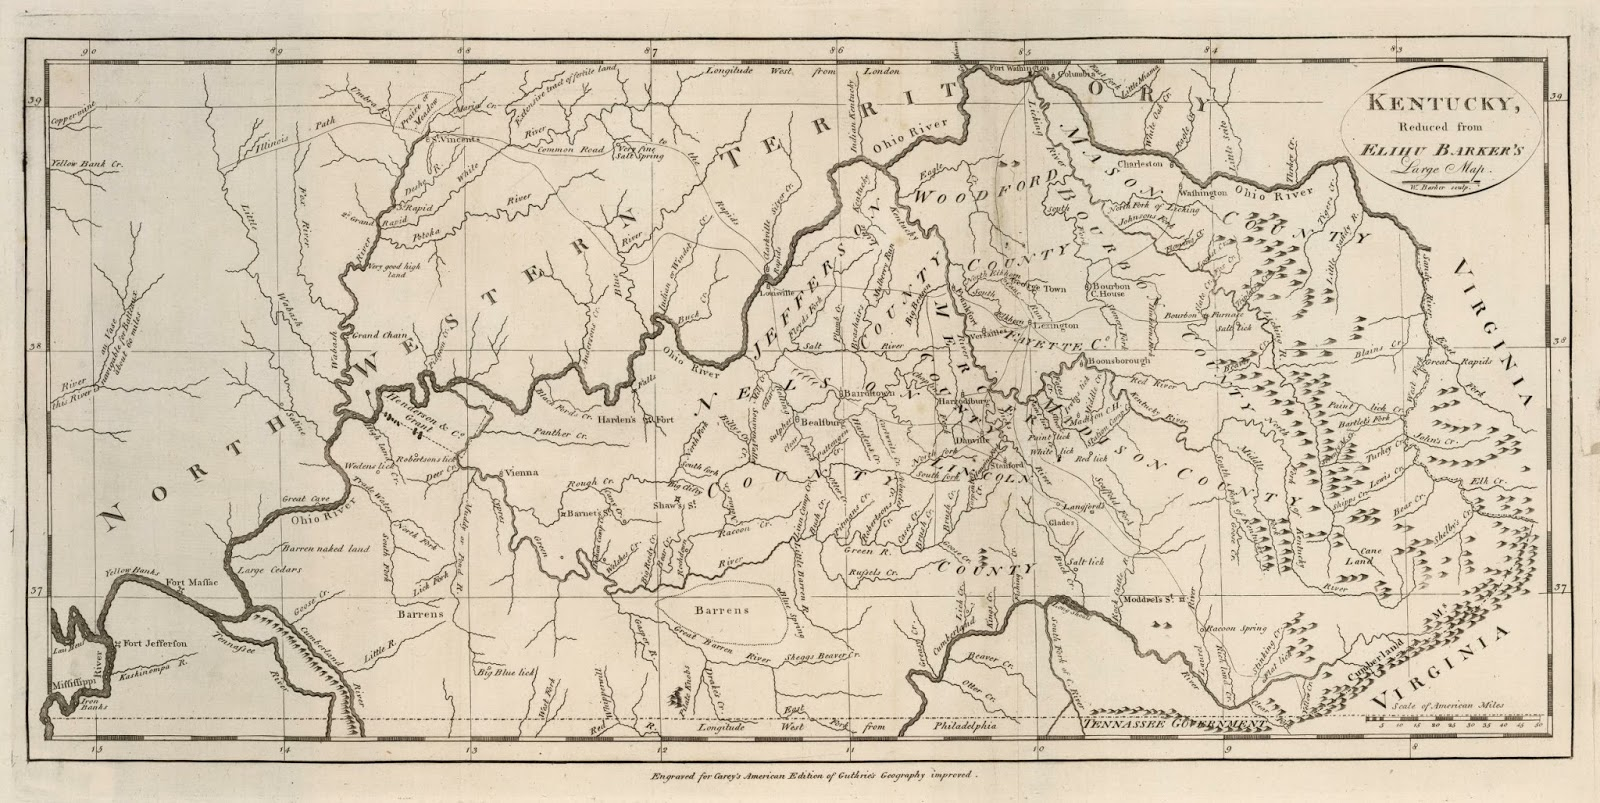 Antique Prints Blog: American State Exclaves: The Kentucky Bend on kentucky precipitation map, kentucky time zone map, kentucky highways map, kentucky golf map, georgia land map, kentucky forests map, kentucky temperatures, kentucky capitol map, arizona land map, kentucky airports map, kentucky lakes map, kentucky life, maryland land map, ky road map, kentucky county map, kentucky park map, south carolina land map, oklahoma land map, florida land map,